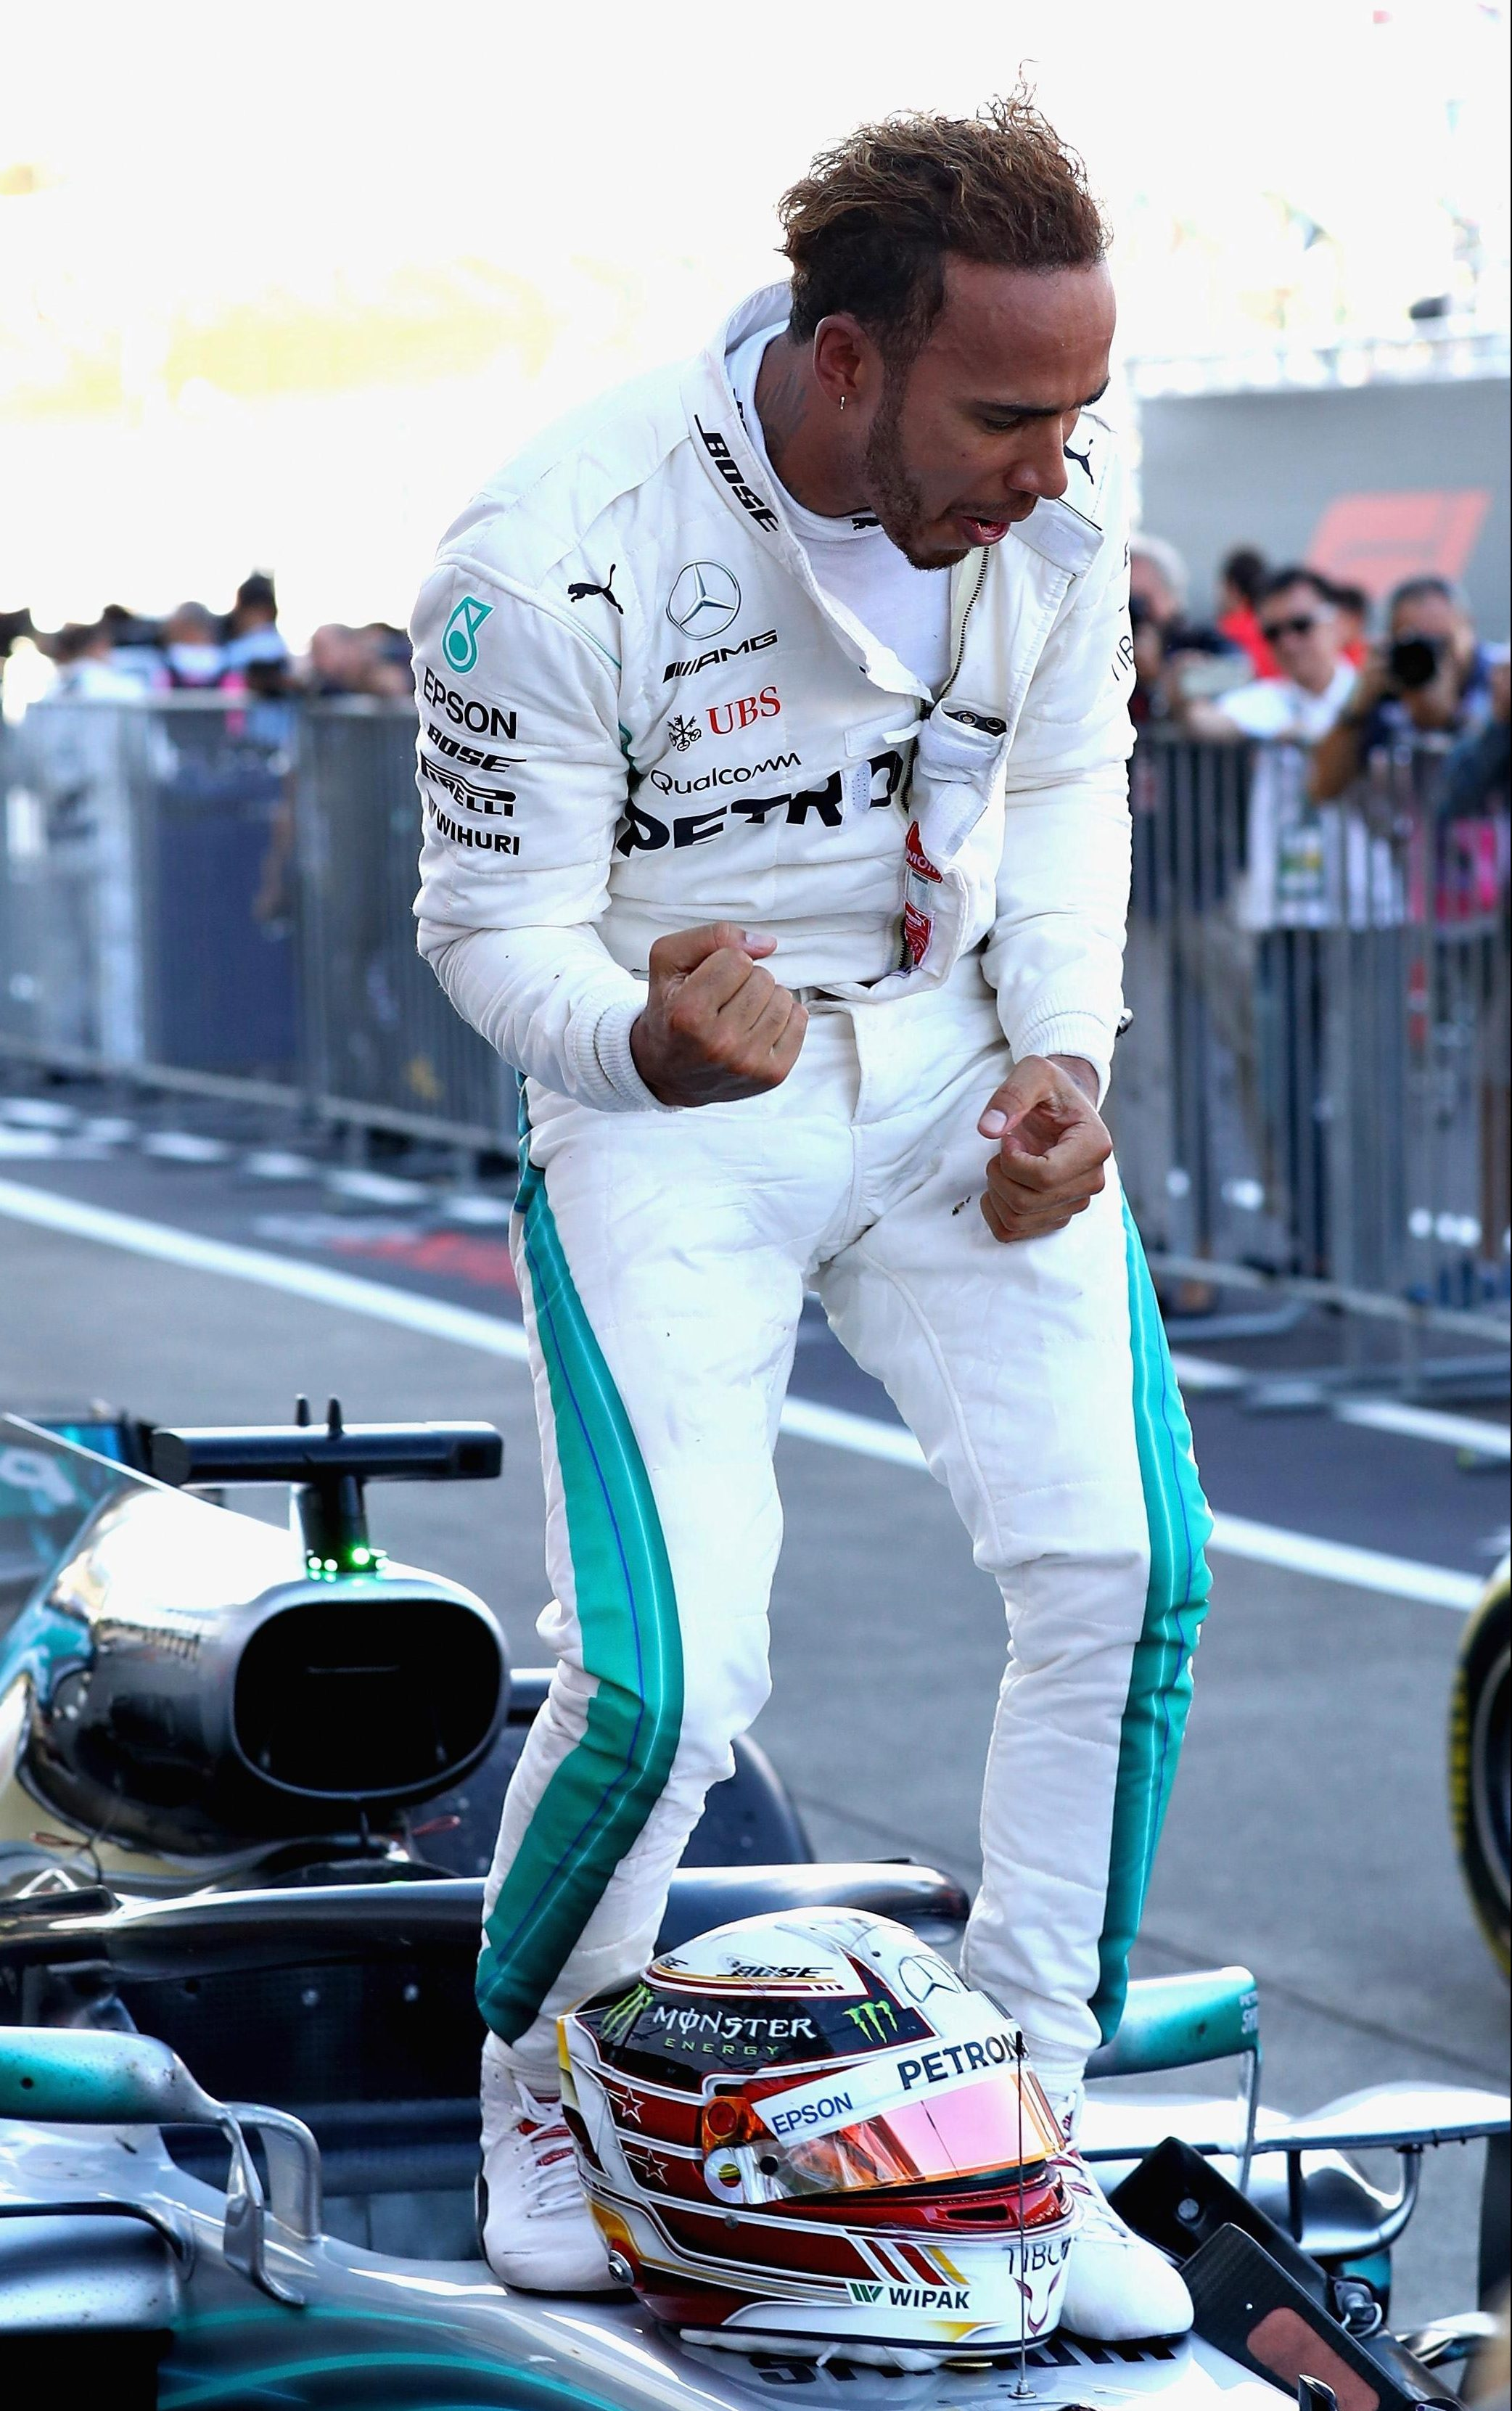 Hamilton has won six of the last seven races in Formula One thanks to today's win